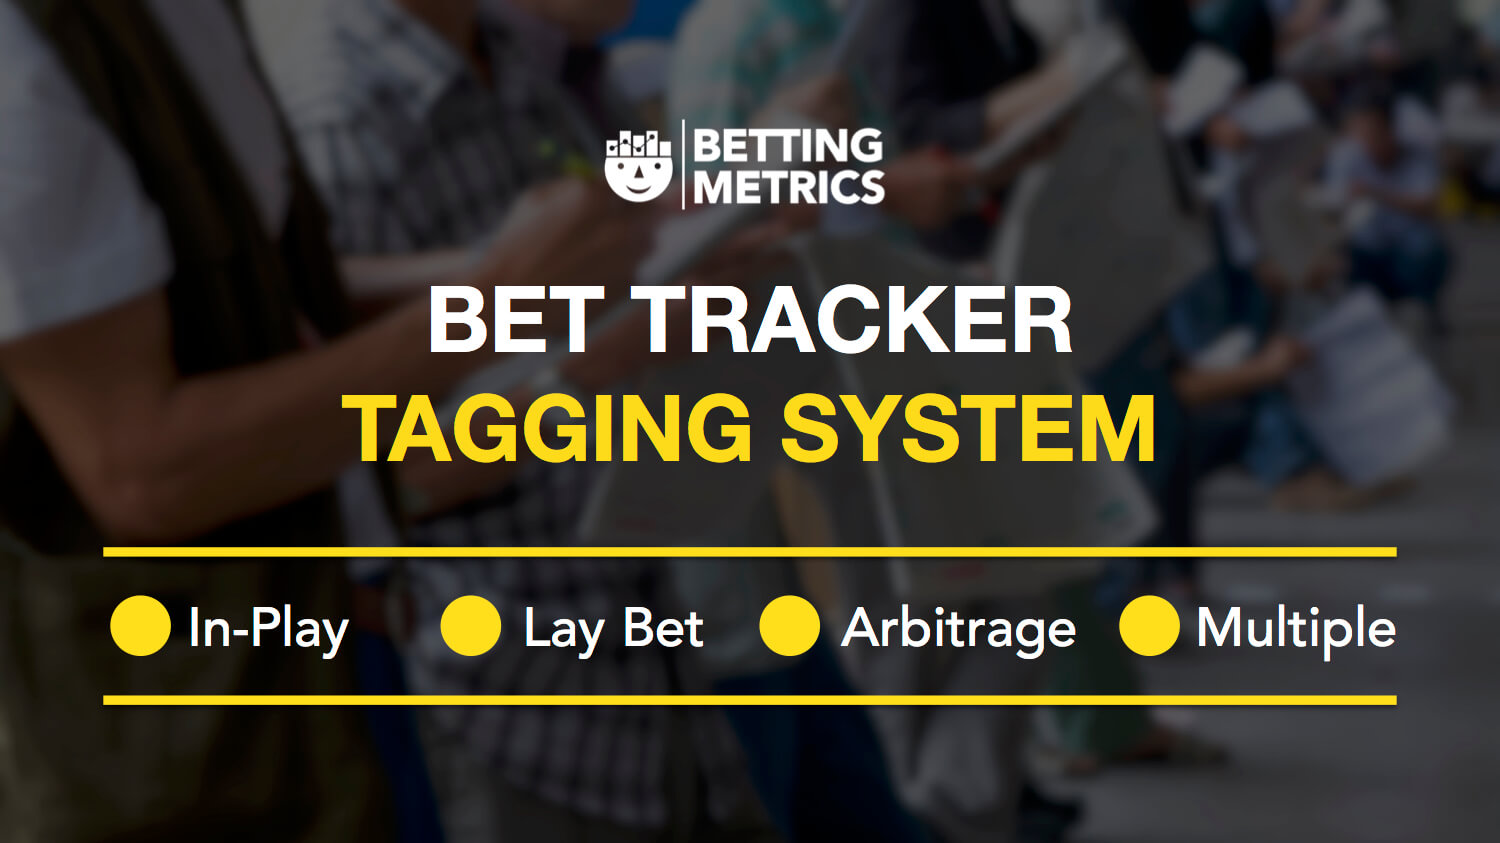 Bet tracker - bettingmetrics